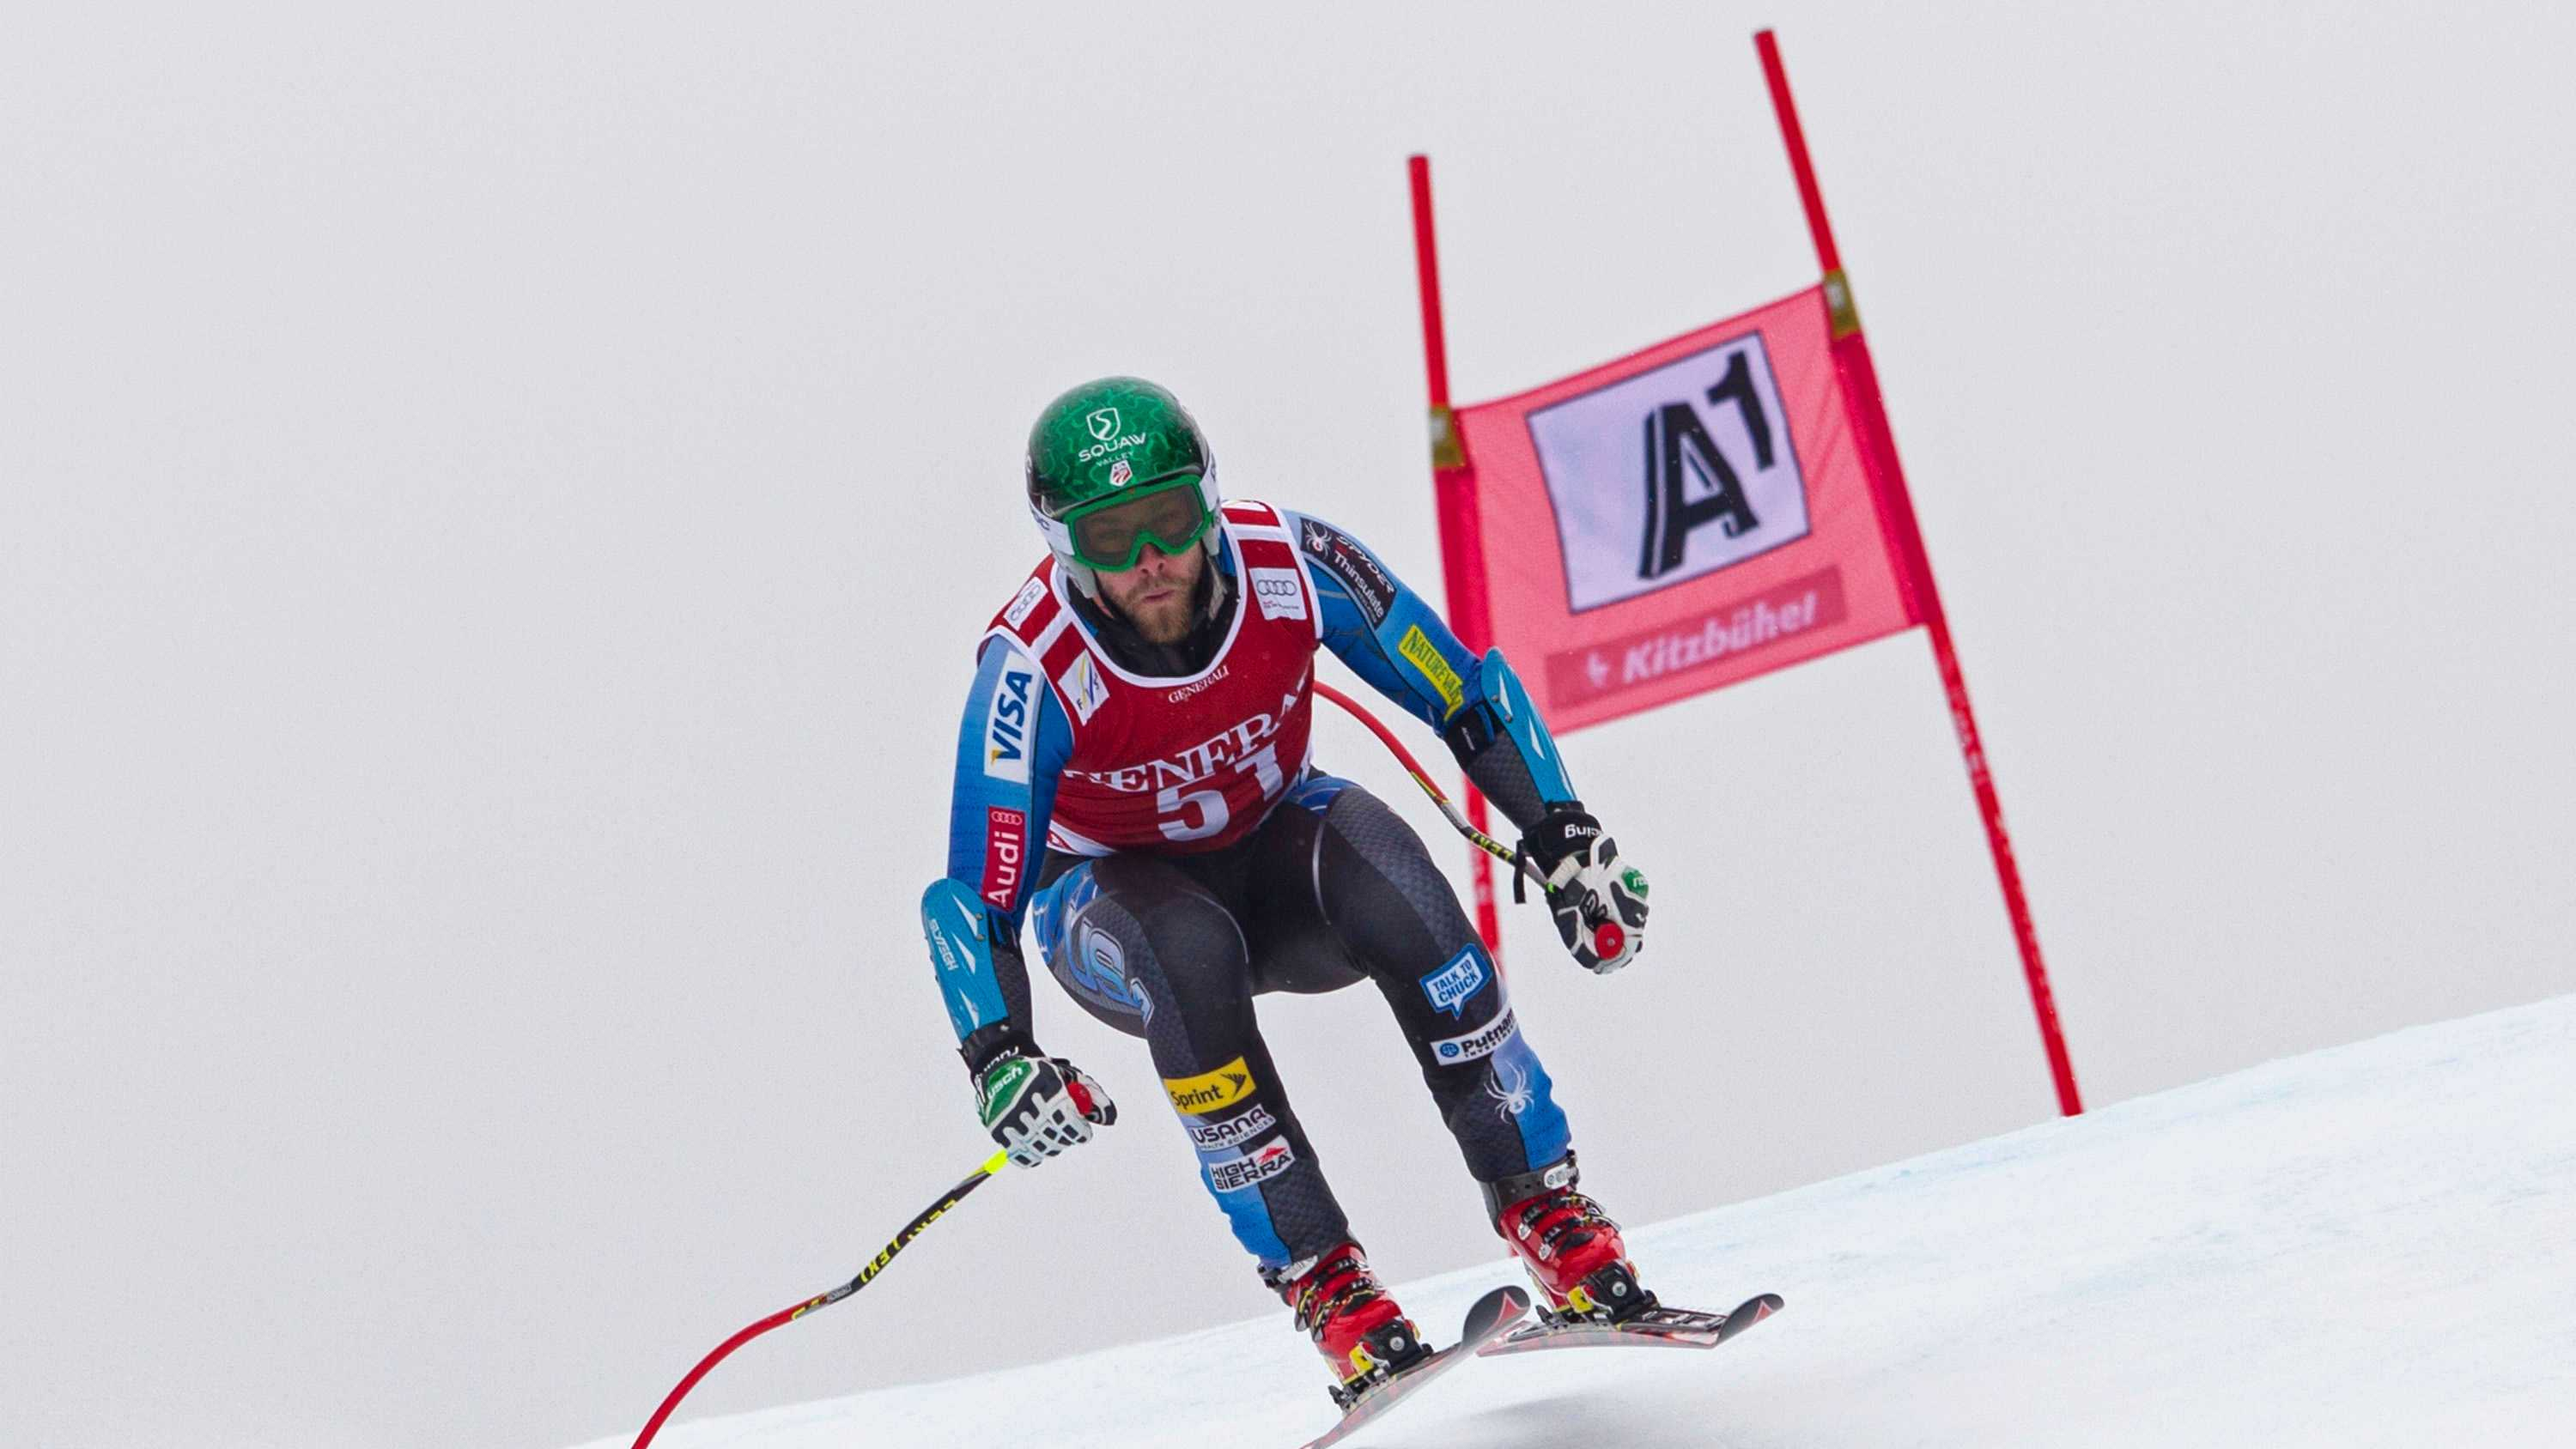 Travis Ganong races down the course during the Audi FIS Alpine Ski World Cup Super G on Jan. 25 in Kitzbuhel, Austria.